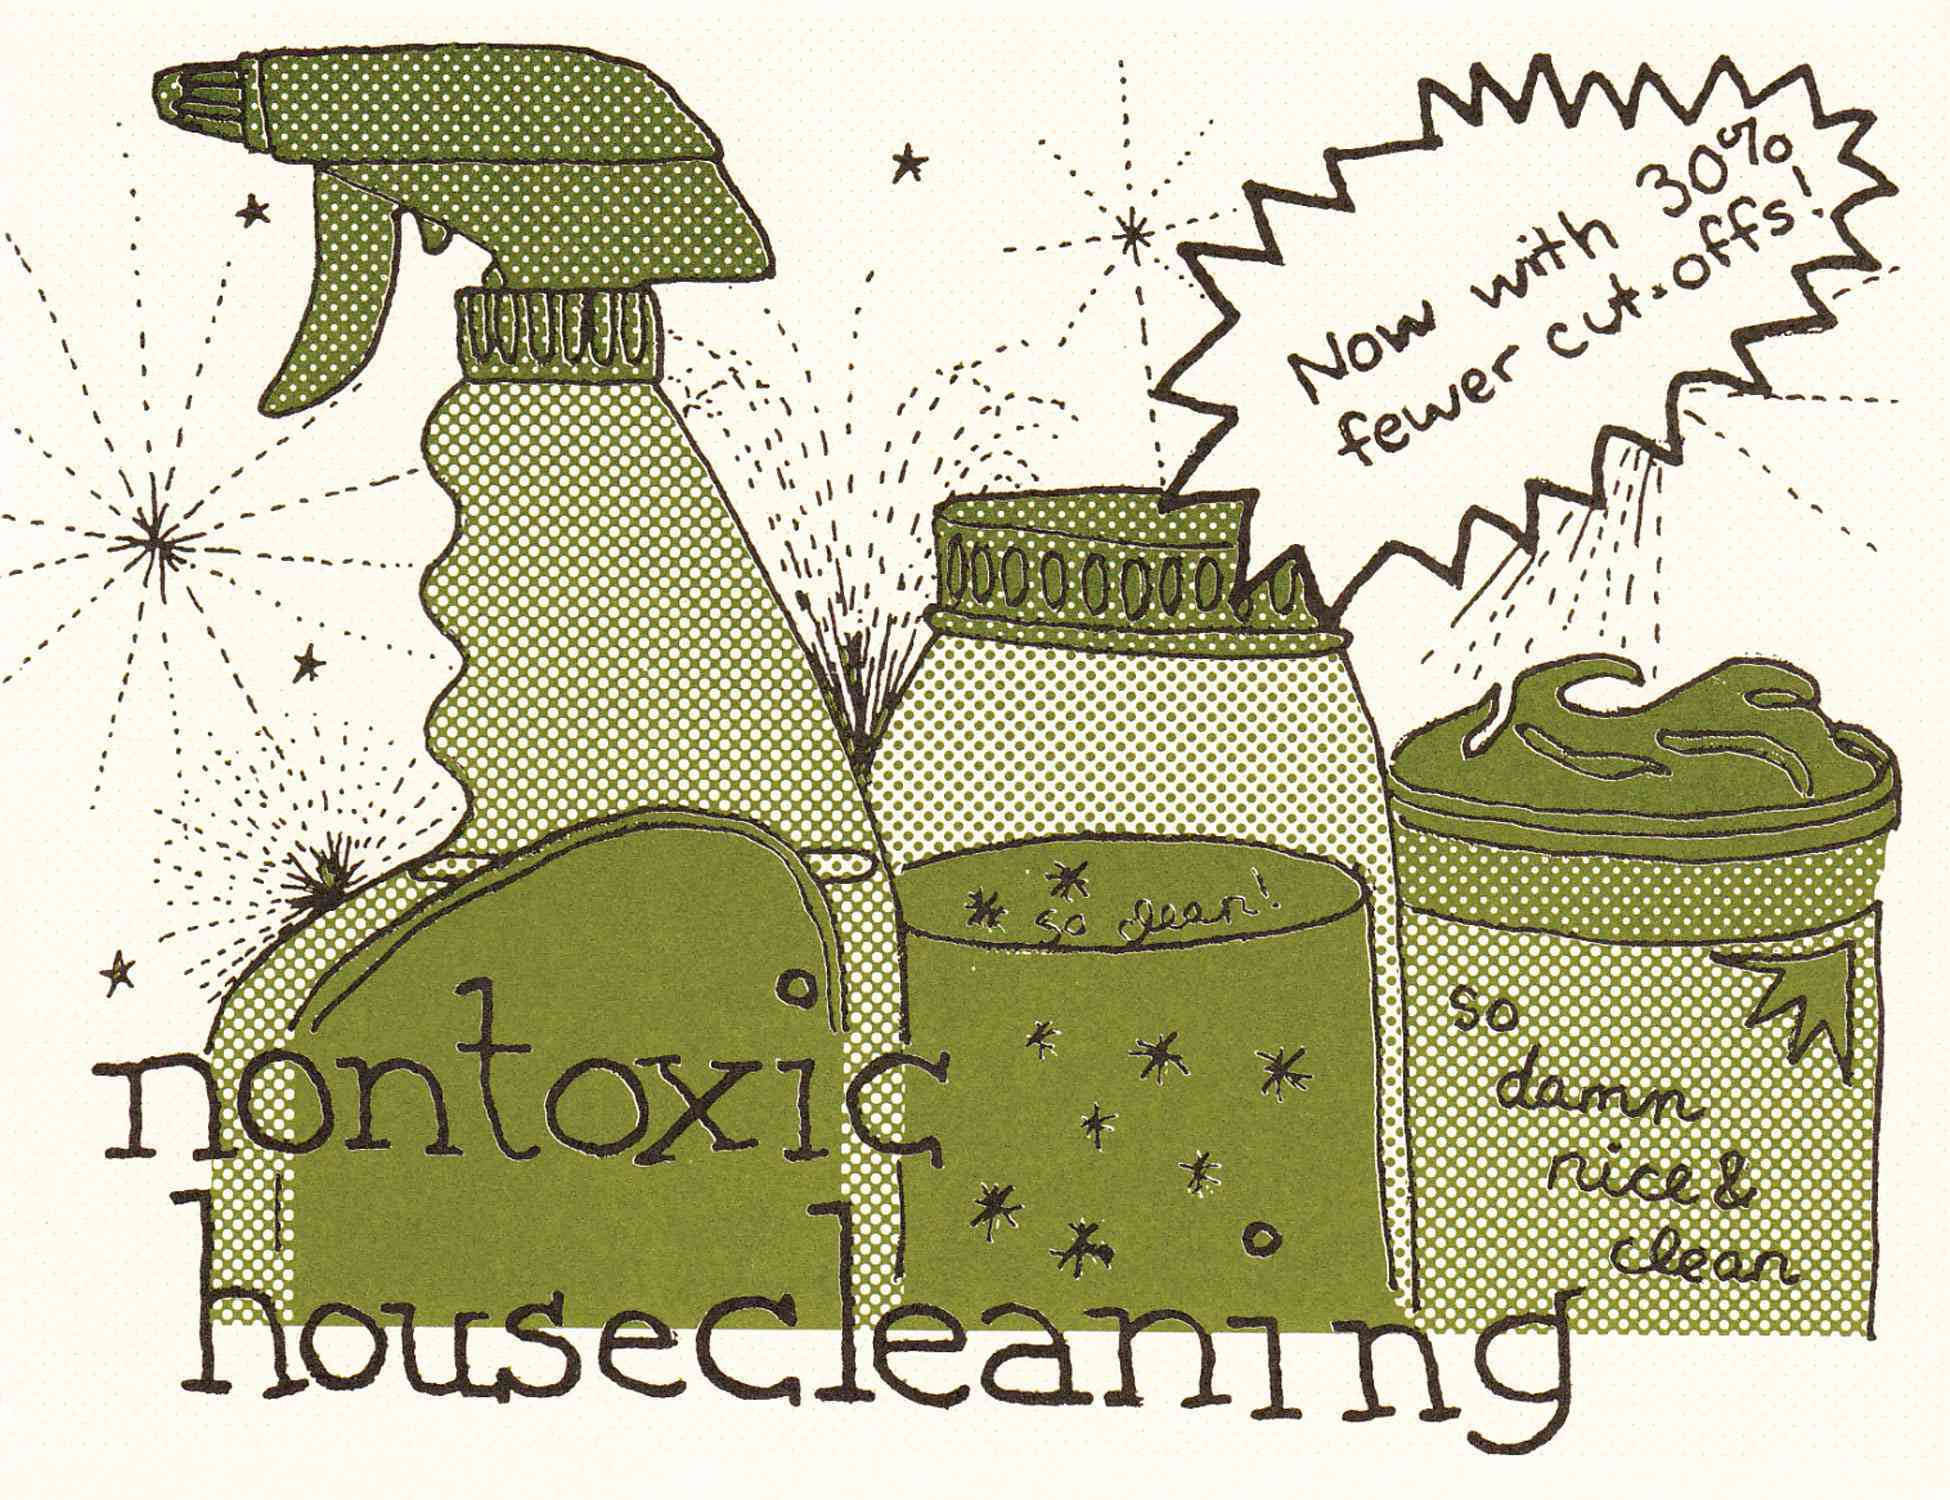 Nontoxic Housecleaning (Pamphlet)